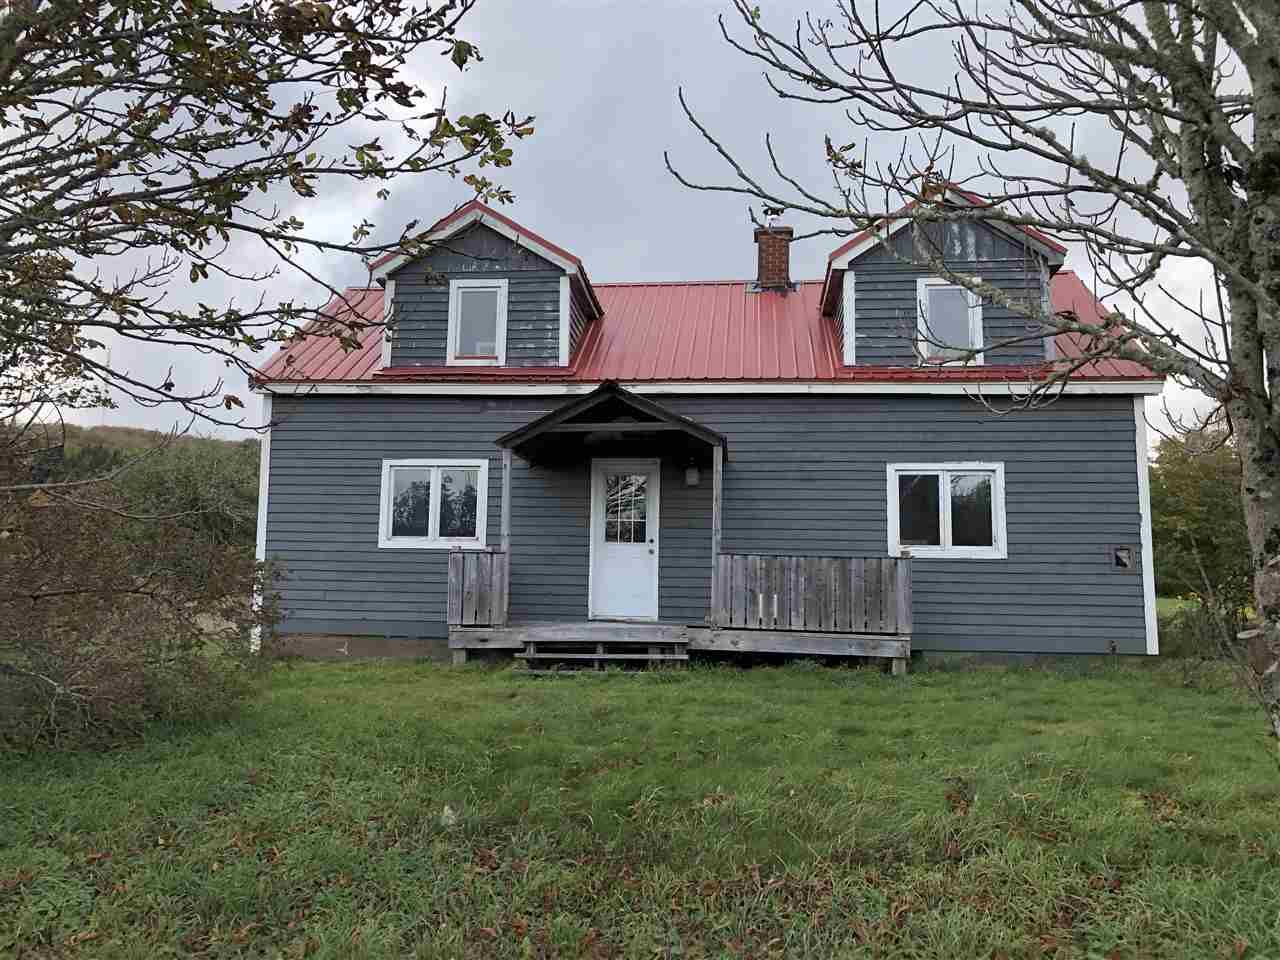 Main Photo: 511 Brookland in Brookland: 108-Rural Pictou County Residential for sale (Northern Region)  : MLS®# 202020953